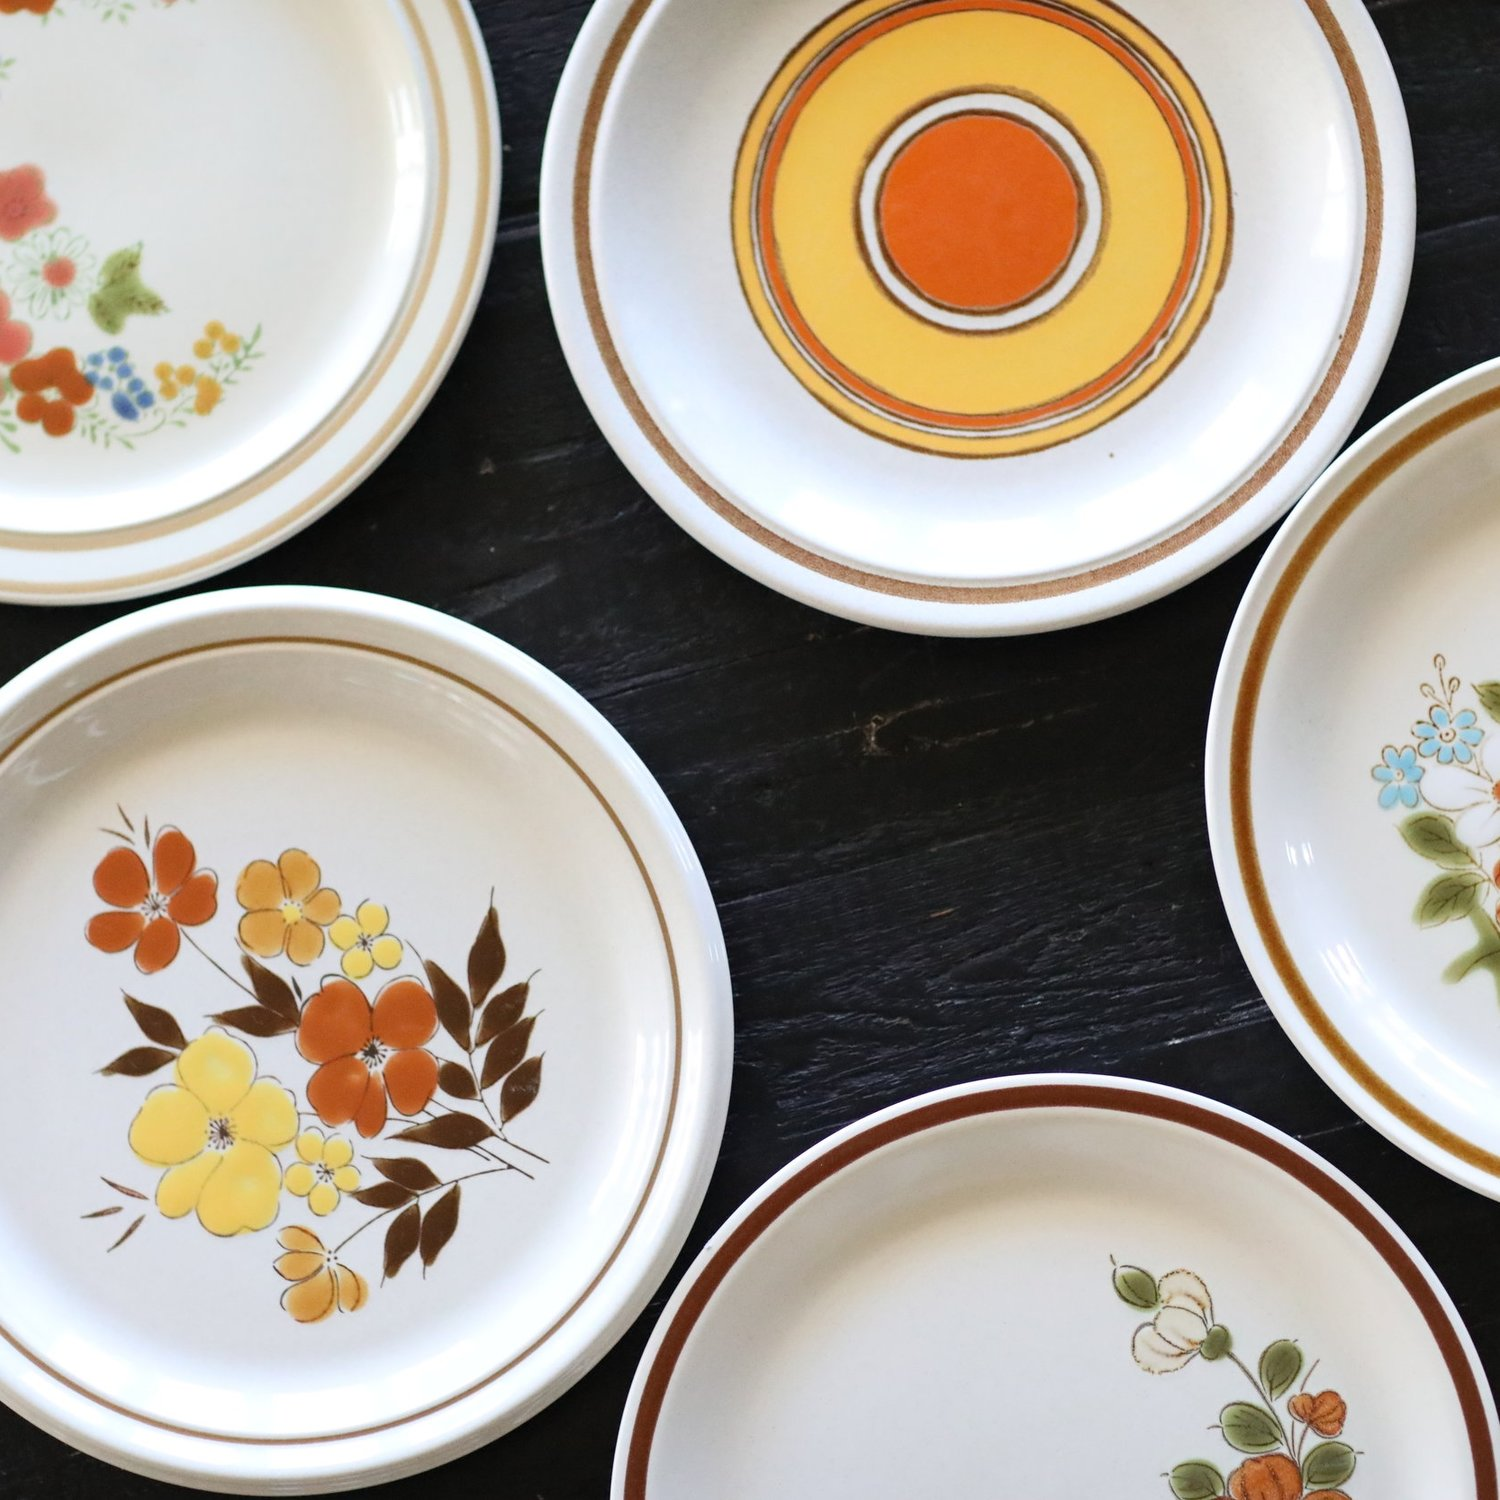 Assorted vintage mismatched stoneware in yellows and oranges. Event rentals.